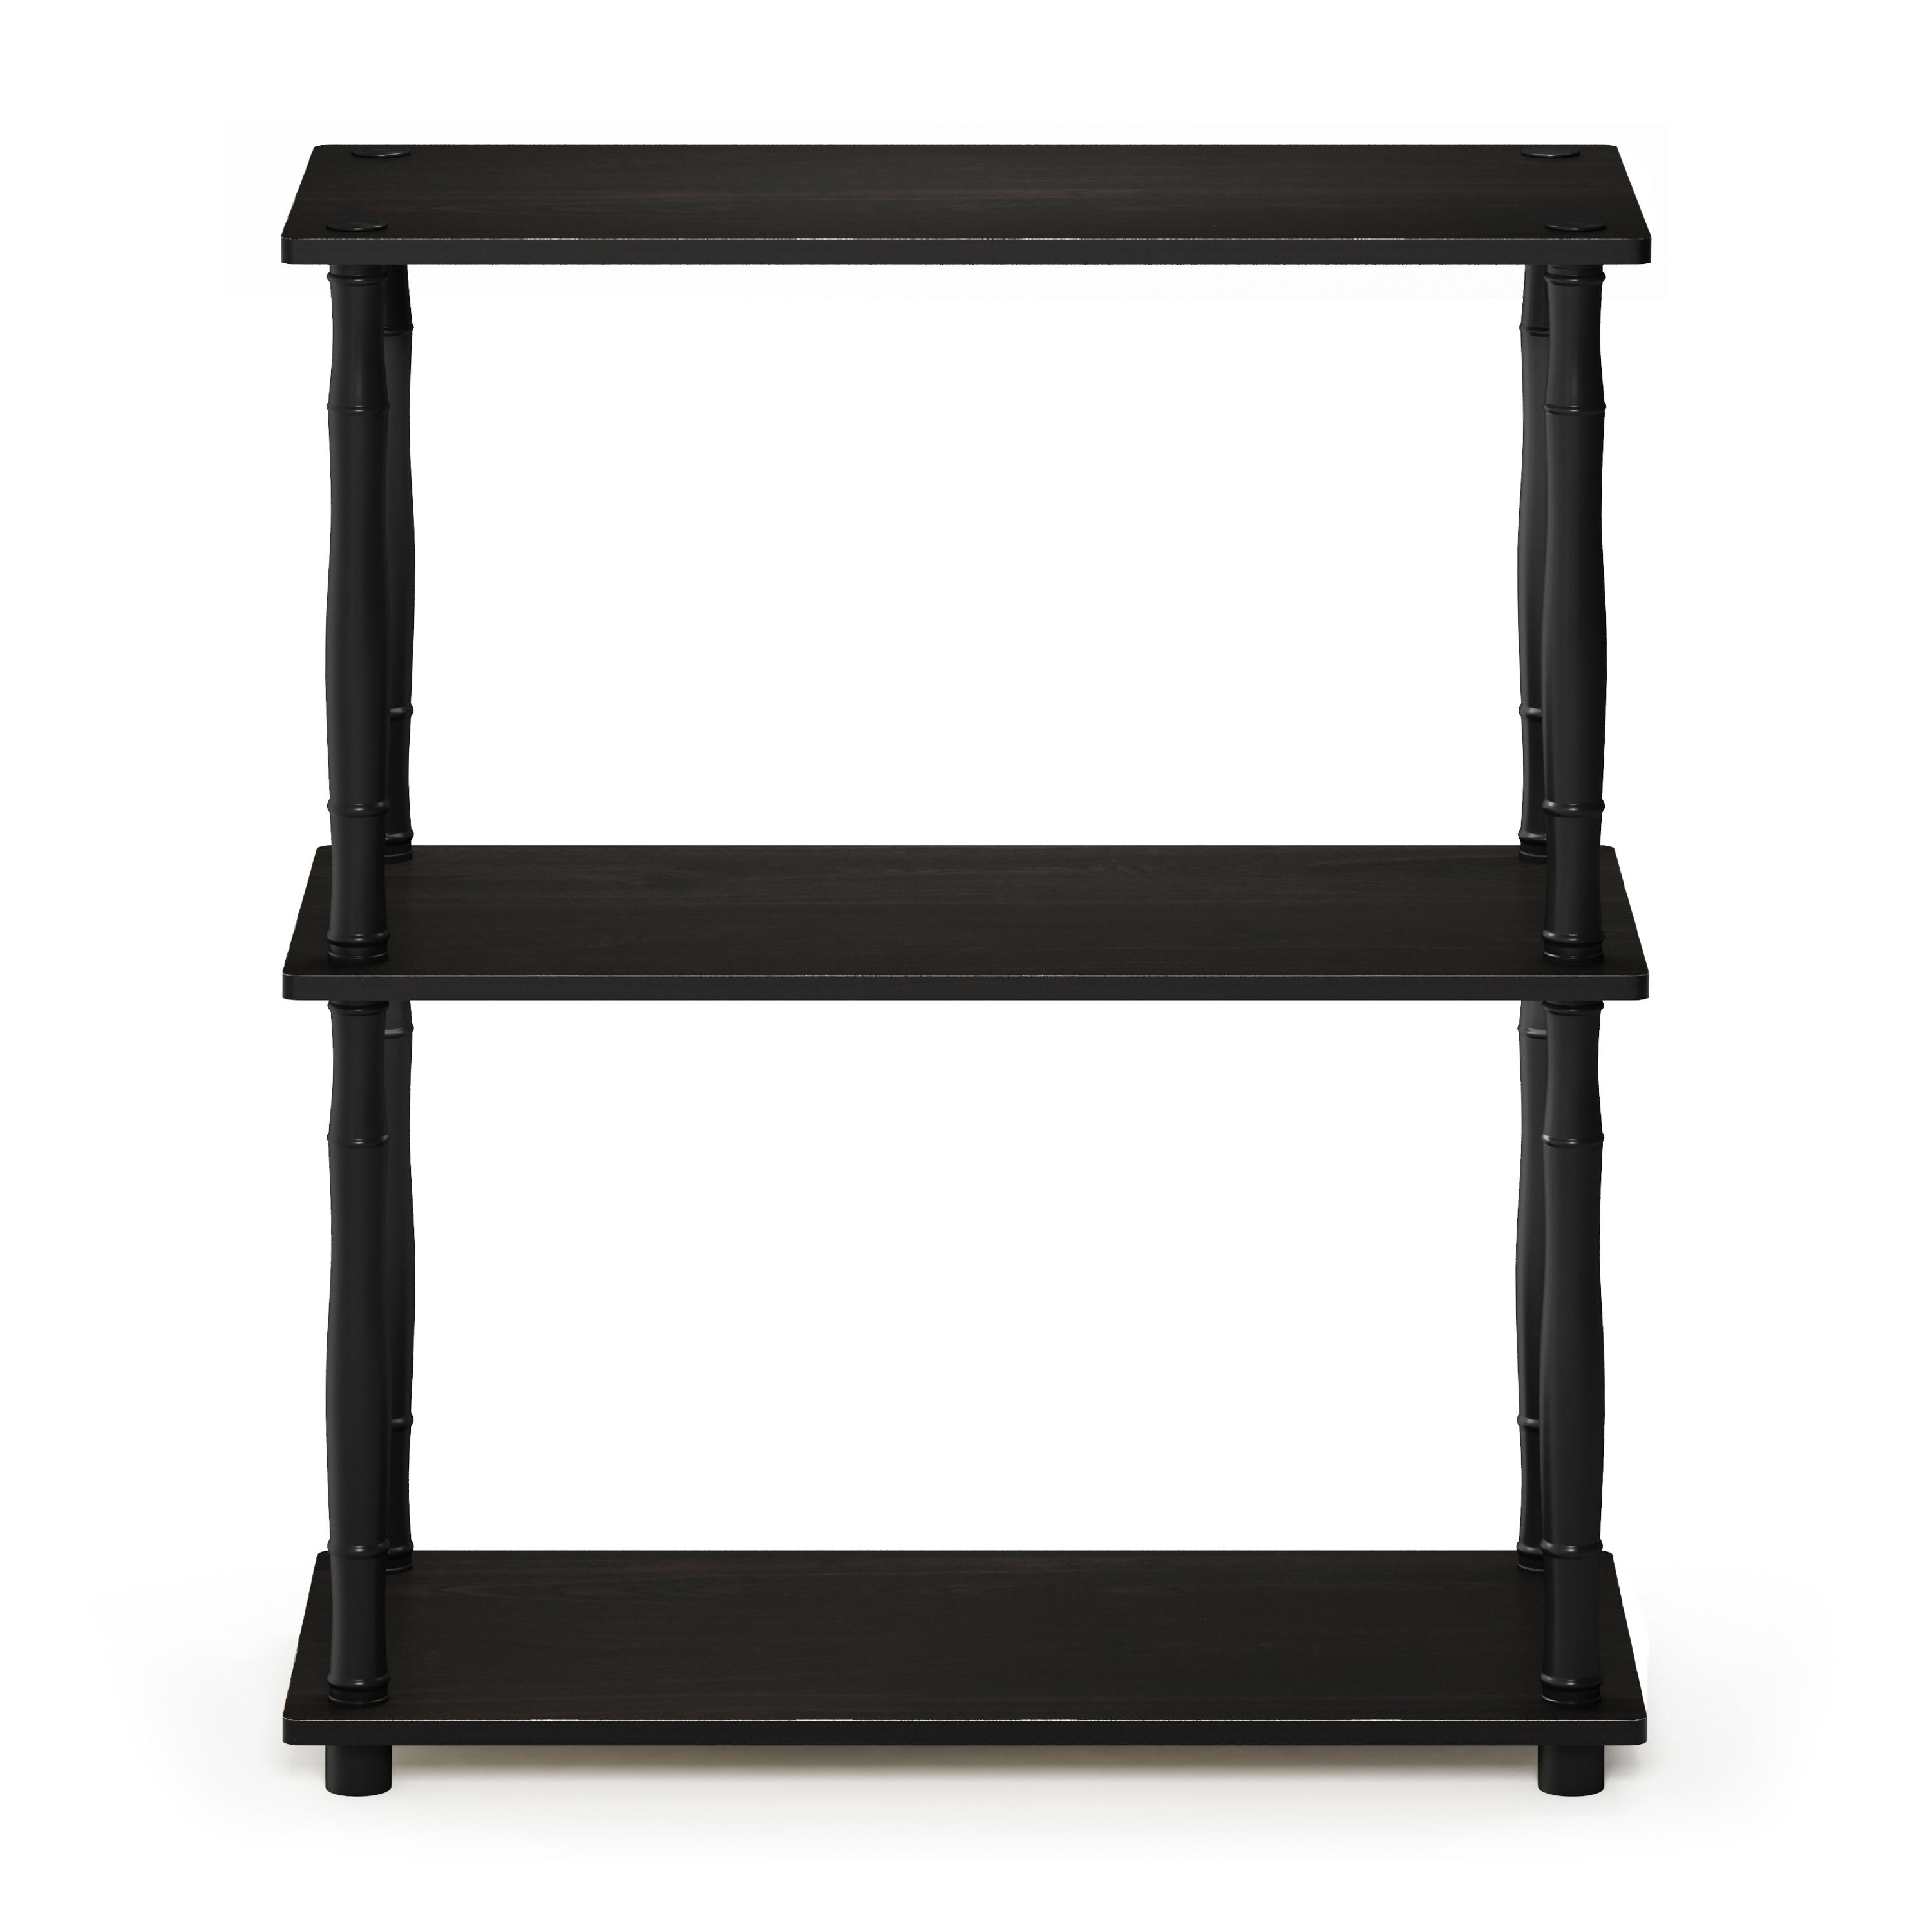 Furinno Turn-N-Tube 3-Tier Compact Multipurpose Shelf Display Rack with Classic Tube, Espresso/Black - image 1 de 4